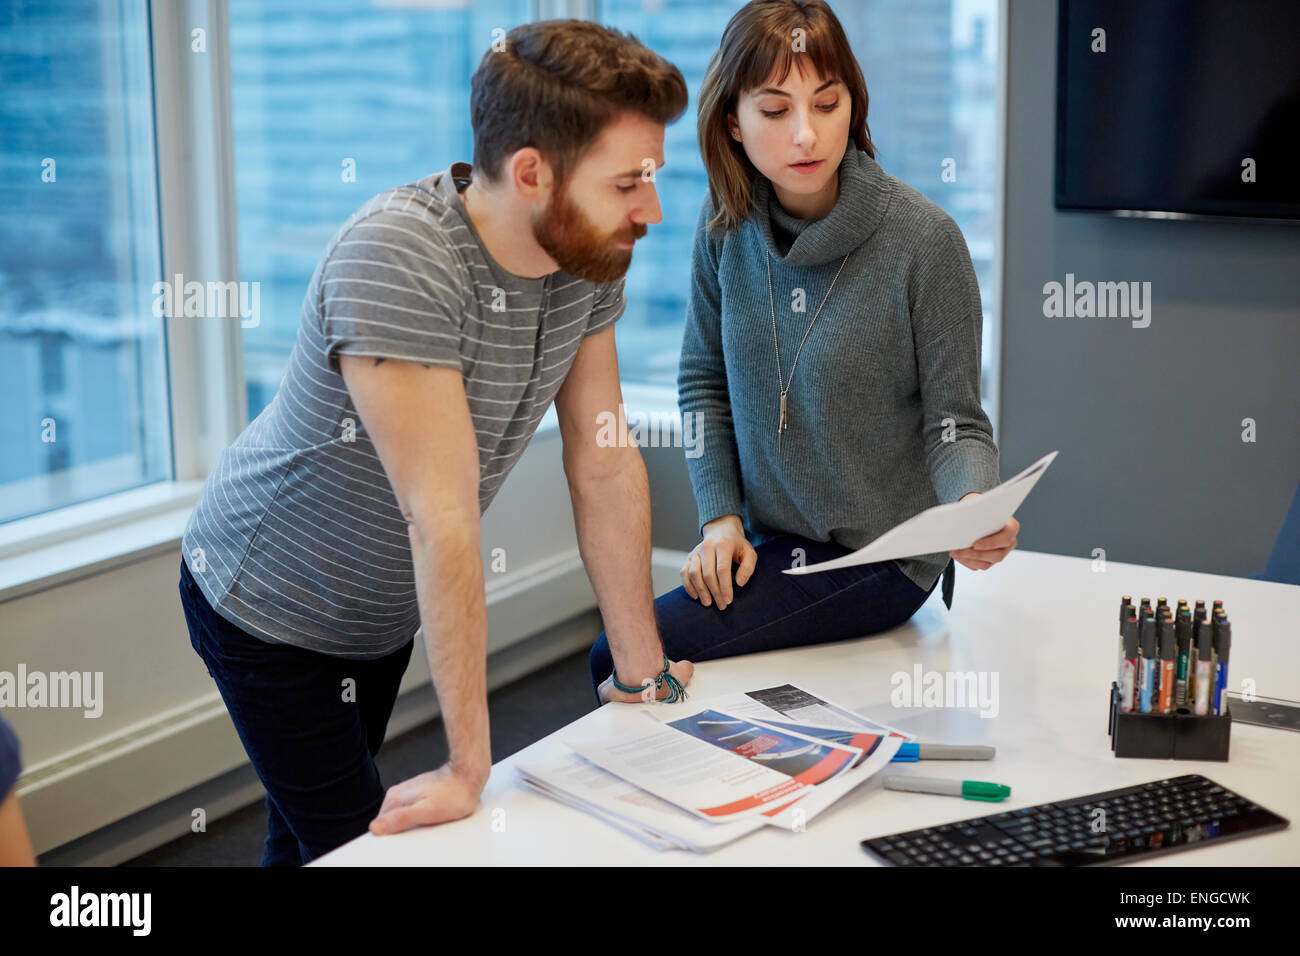 Two colleagues, a man and woman looking over printed pages on a desk. - Stock Image